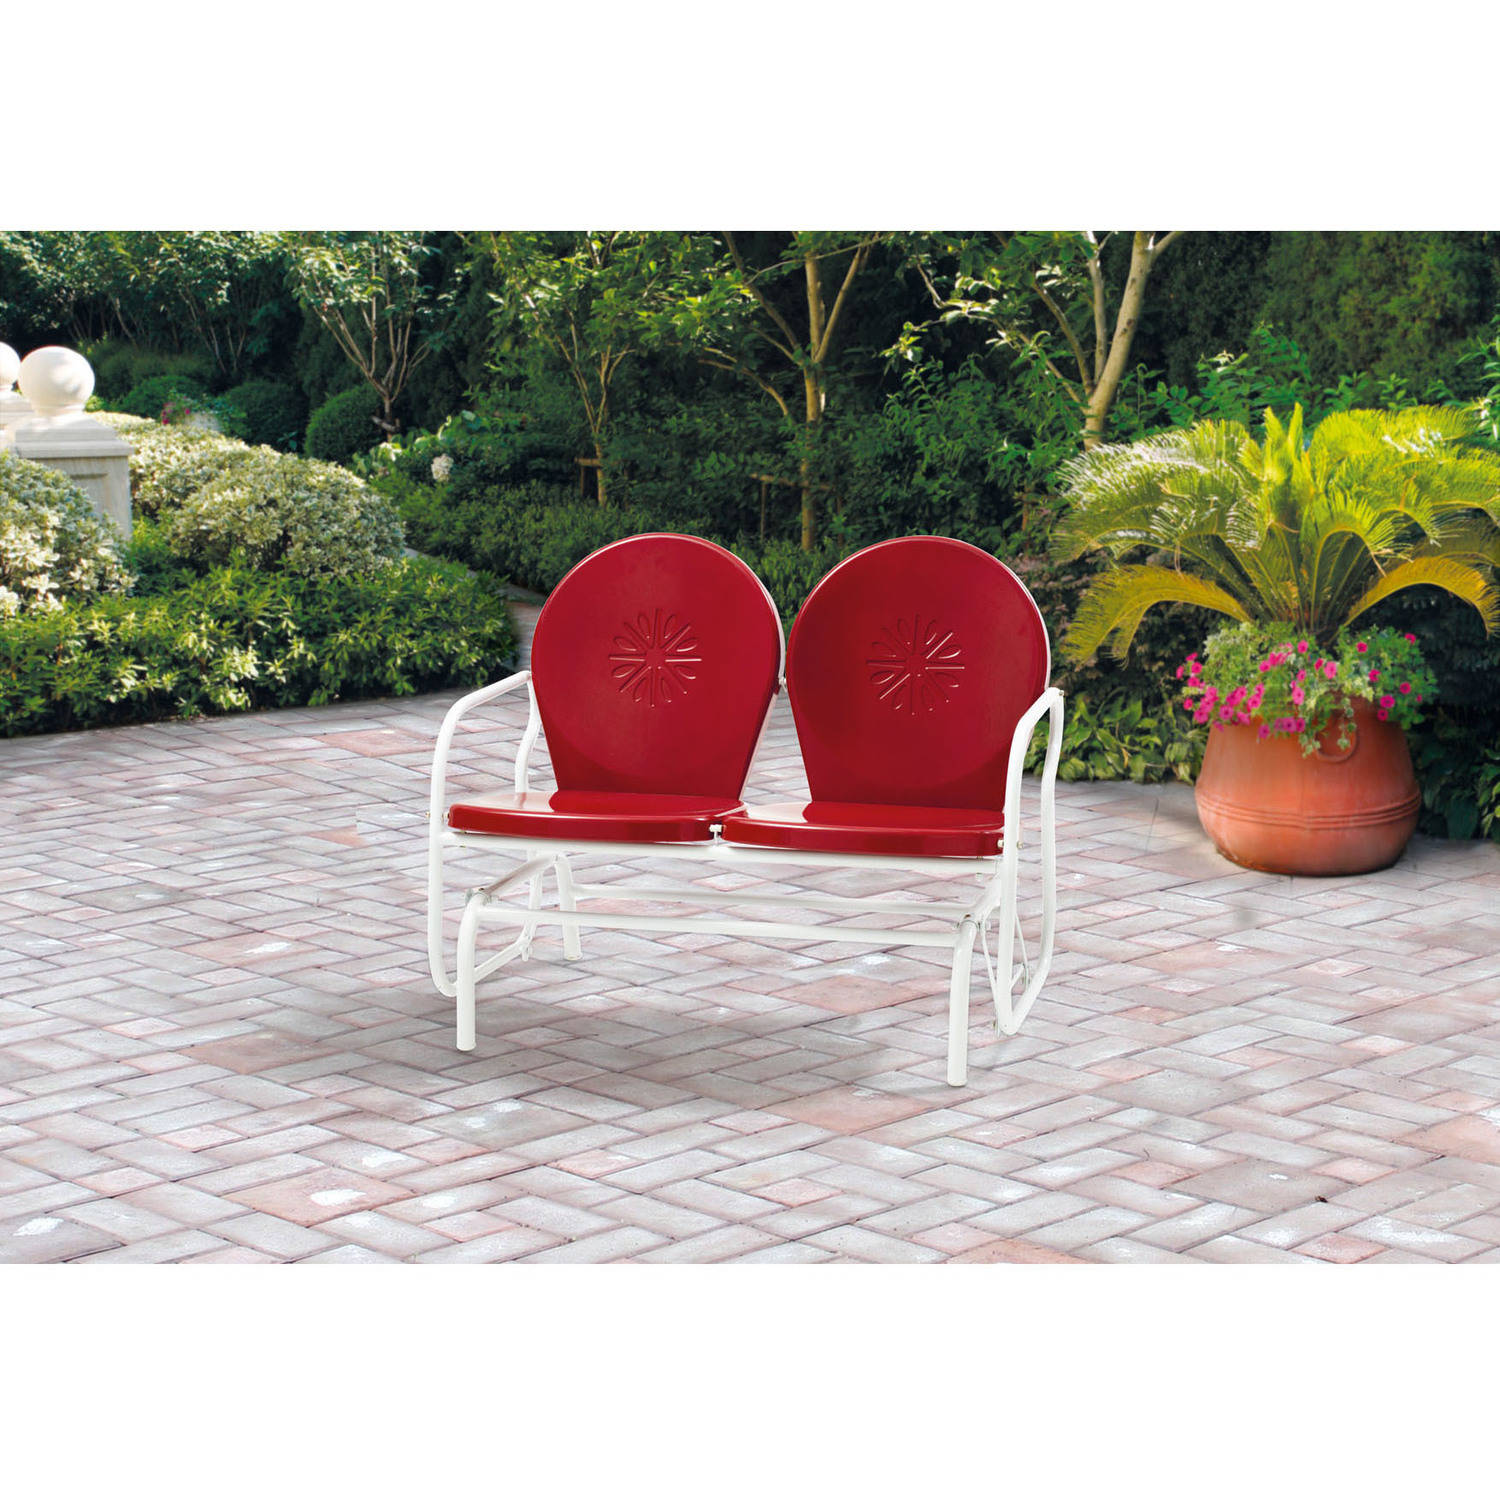 Mainstays Outdoor Retro Outdoor Metal Glider, Red, Seats 2